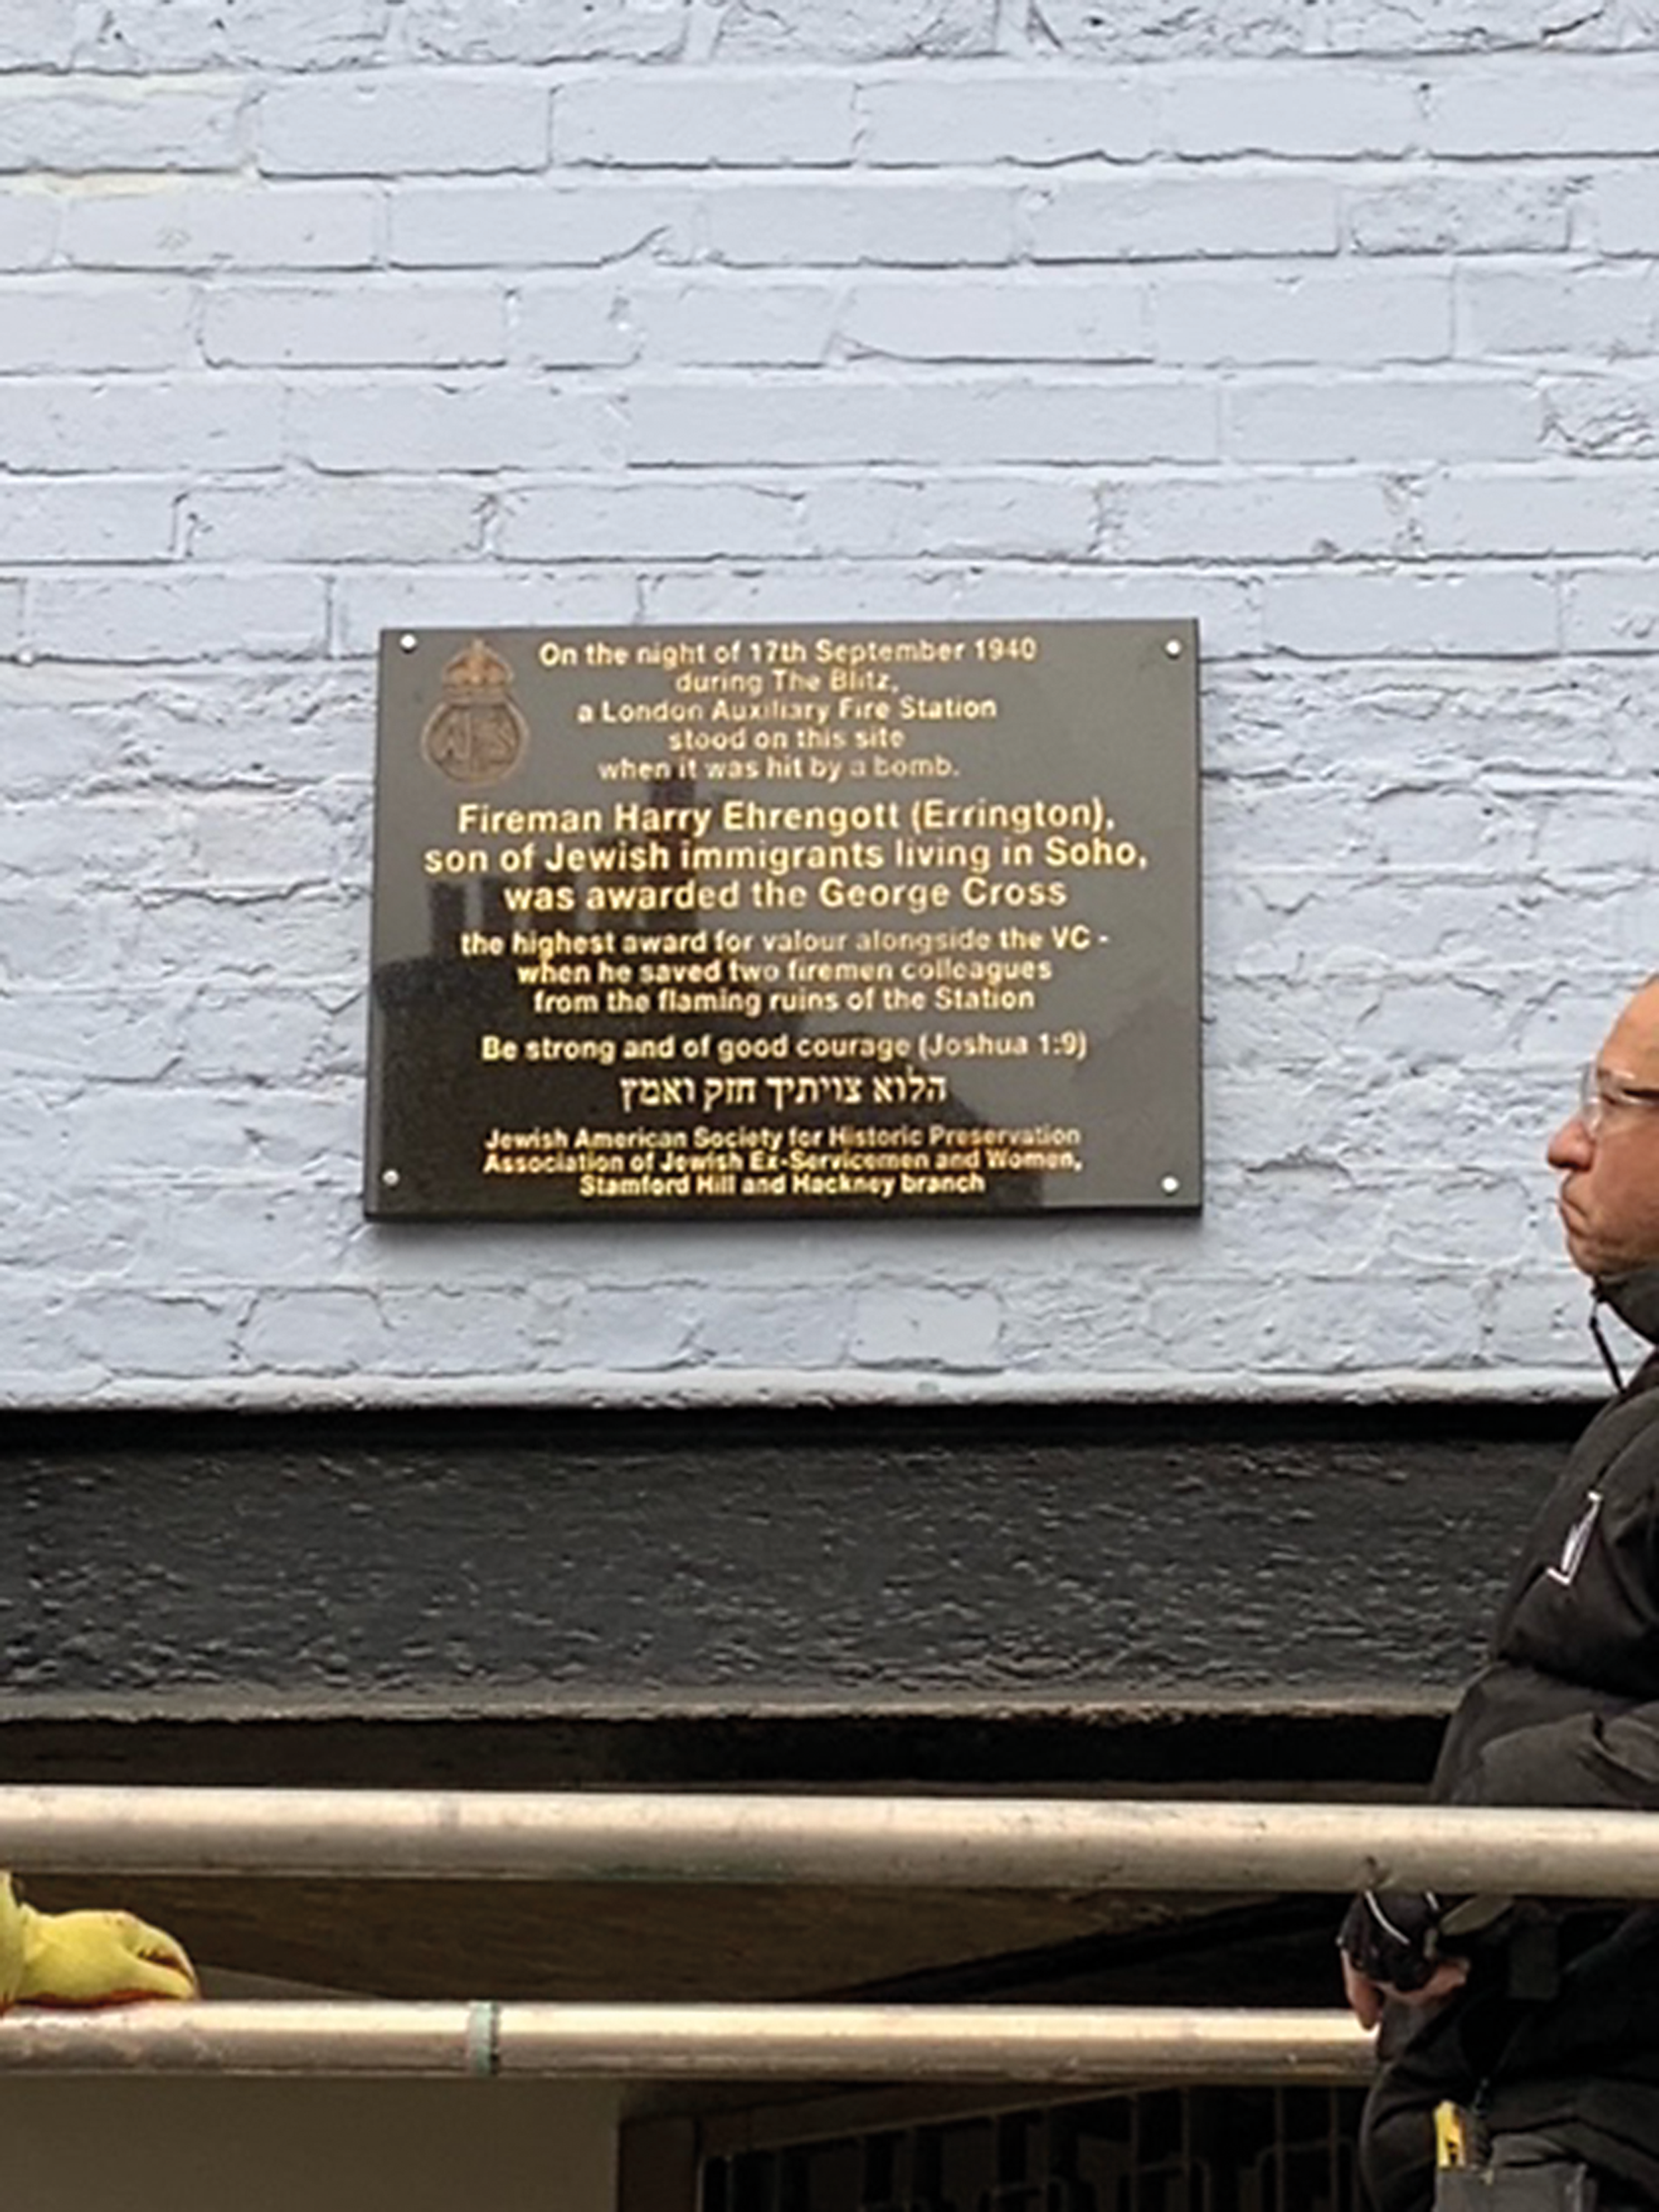 Image courtesy of Martin Sugarman, AJEX Archivist. The Errington plaque was funded and organised by Jerry Klinger of the Jewish American Society for Historic Preservation, Martin Sugarman of Stamford Hill and the Hackney branch of AJEX, of which Harry Errington was a member.